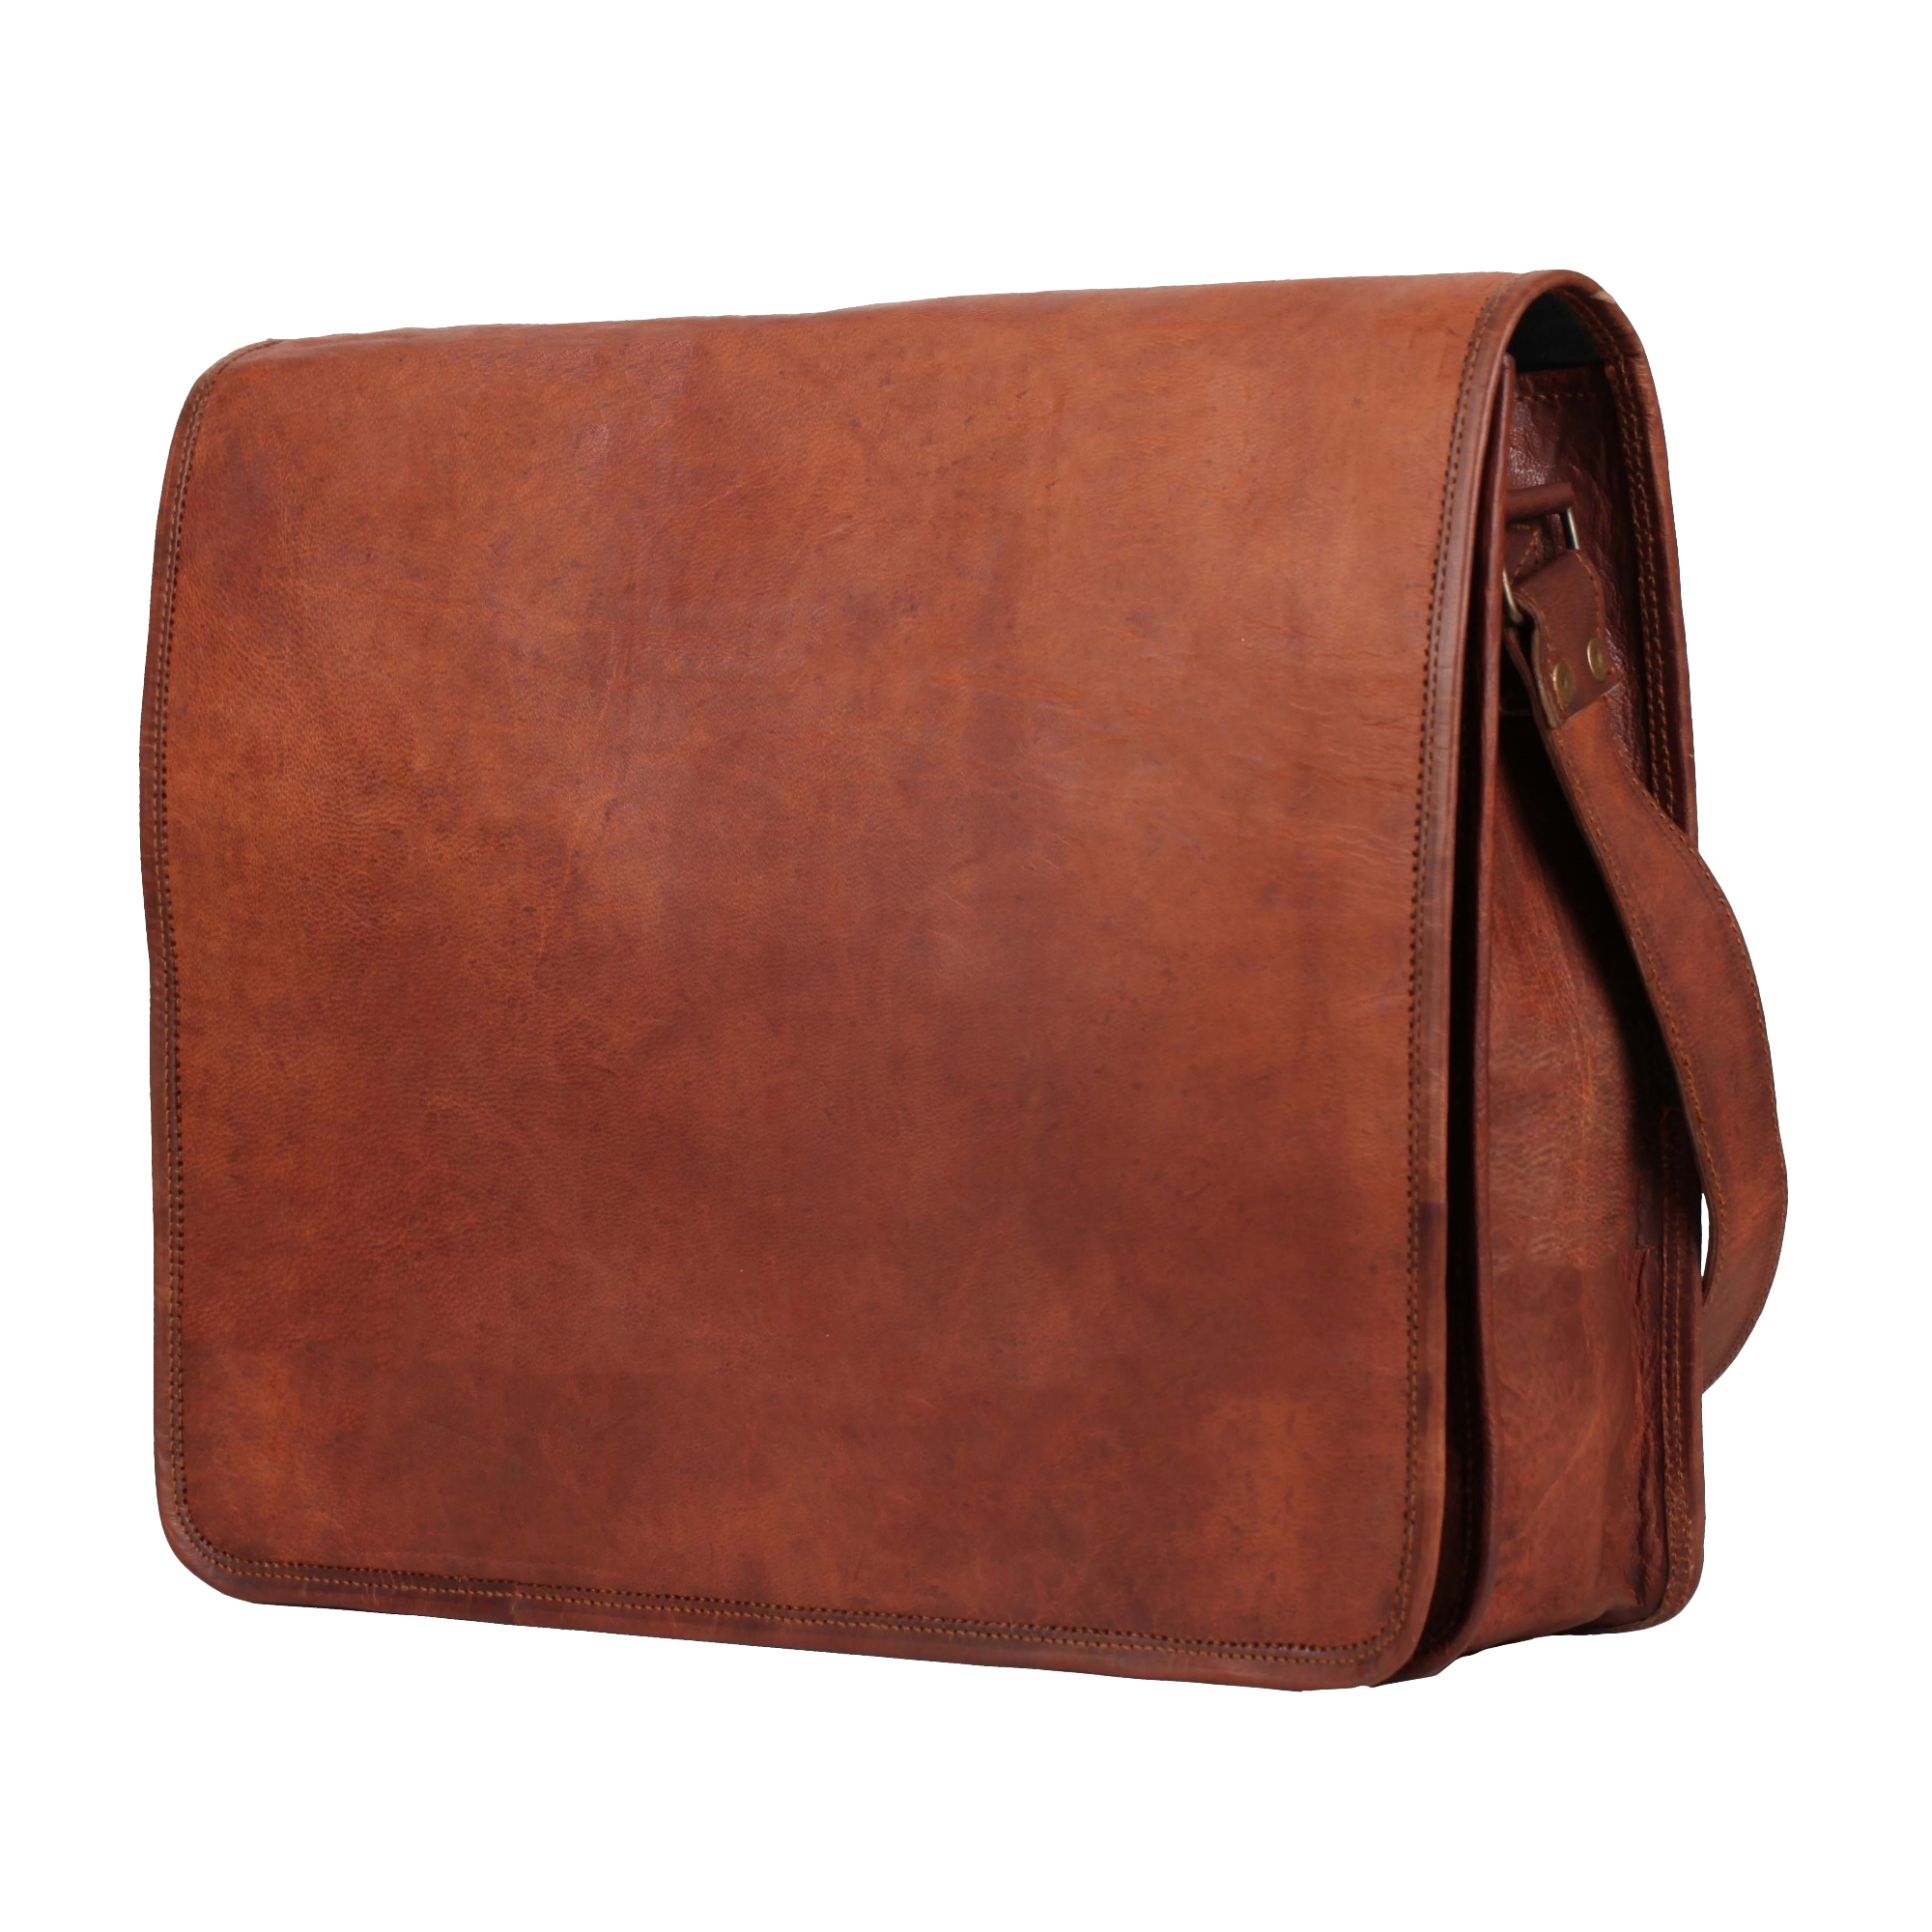 ARTISIAN LEATHER LAPTOP MESSENGER BAG (11 INCH)